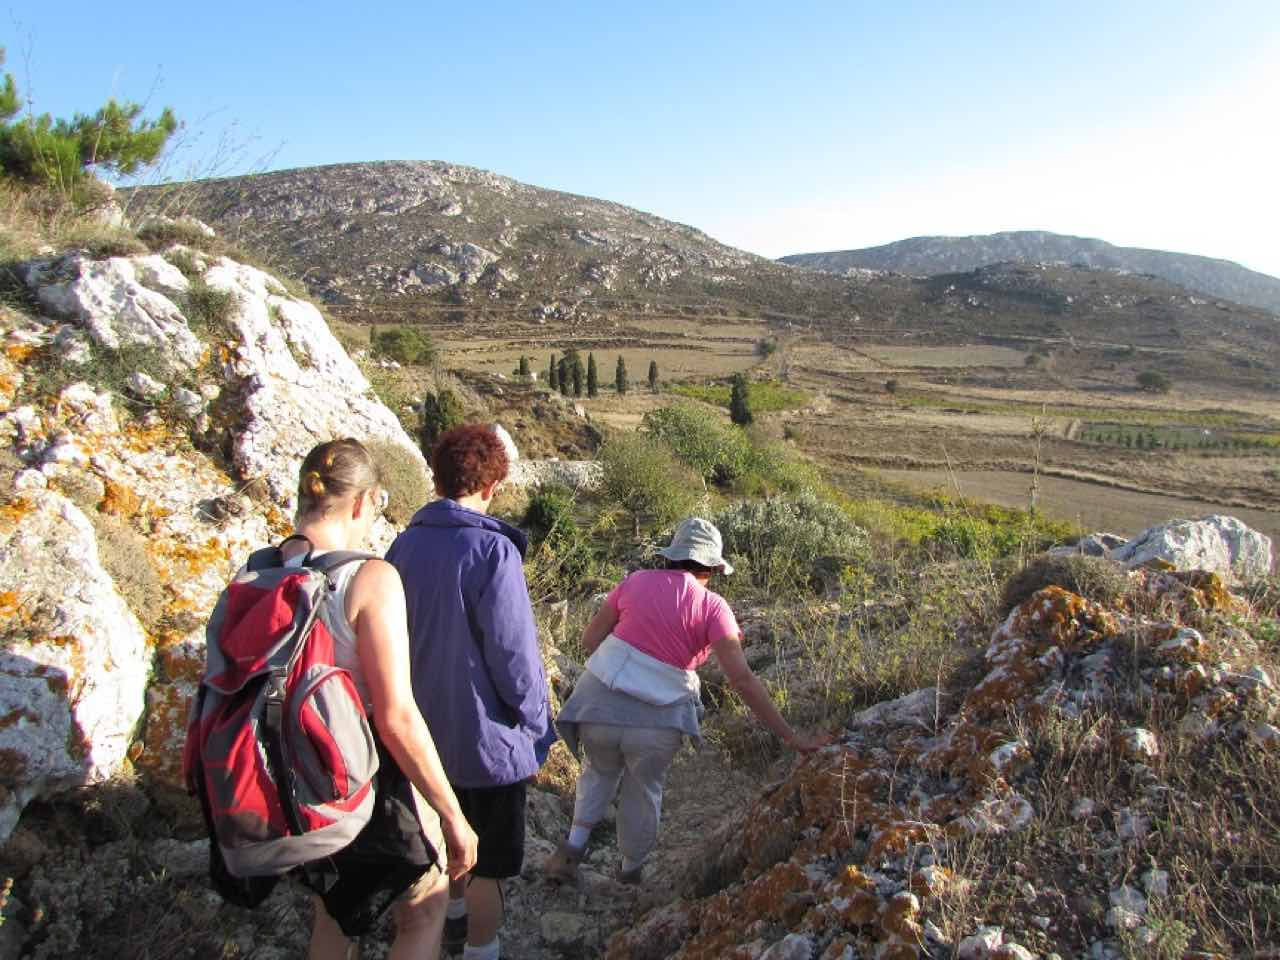 Wild Herbs Of Crete In Sitia Region, Use In Medicine & Gastronomy, wild herbs history tour, activity sitia crete, activities crete, indigenous herbs workshop tour, Petassos - Travellers with a purpose, alternative activities crete, things to do crete, nature and herbs